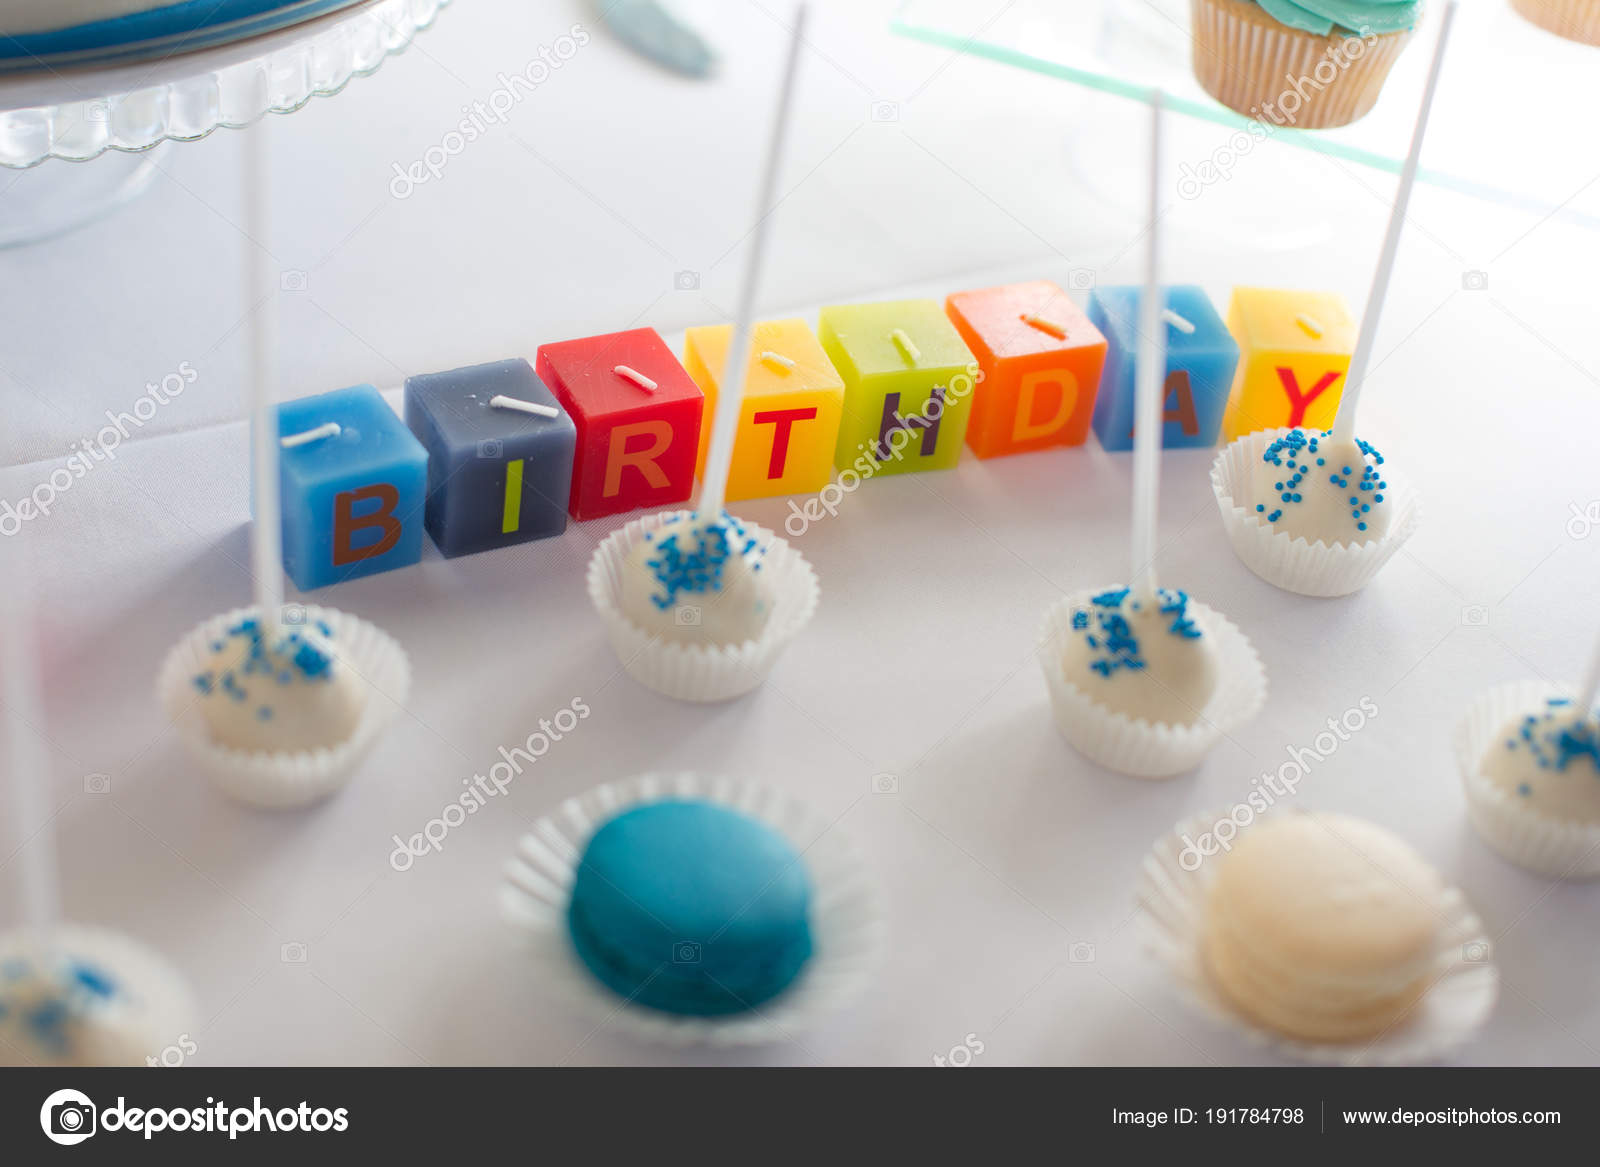 Funny Cake Pops Candles Happy Birthday Background Stock Photo